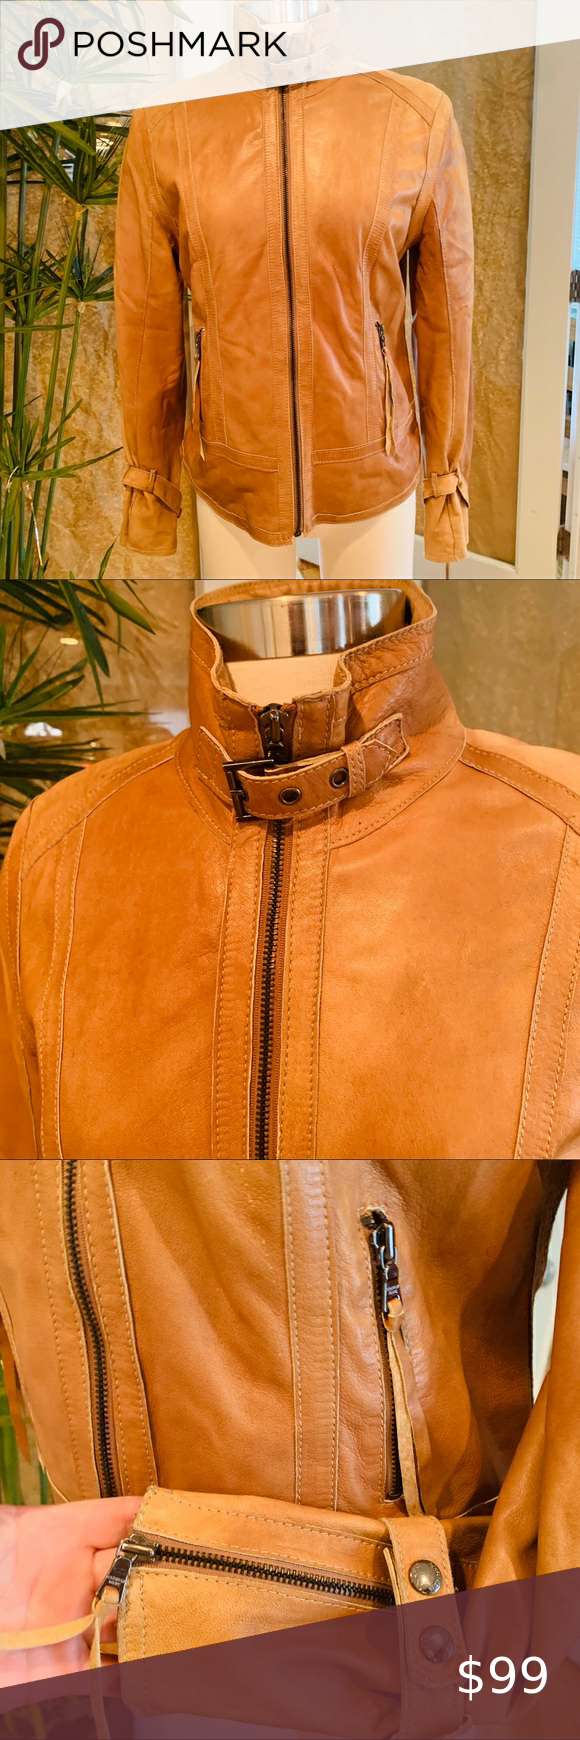 ️ANDREW MARC ️Beautiful Leather jacket L in 2020 Leather